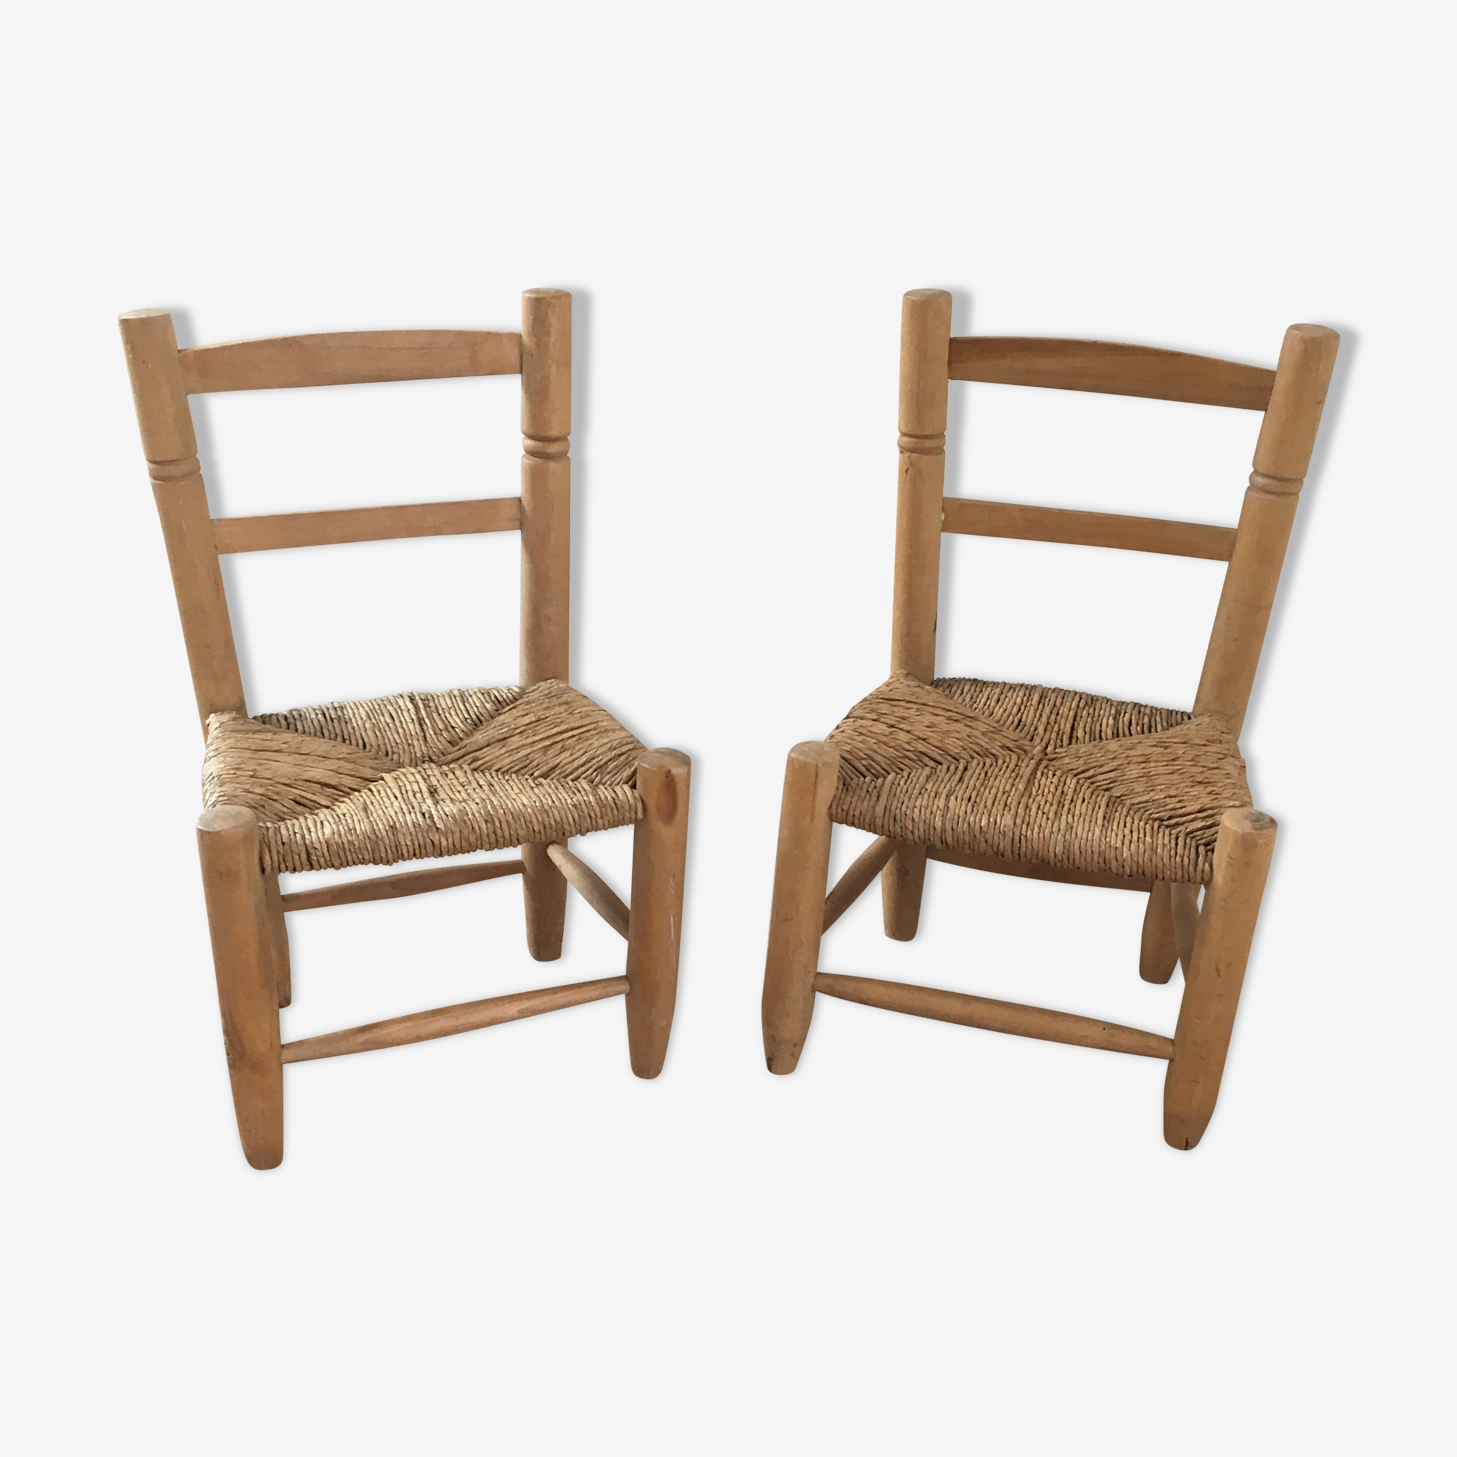 Wood and wicker chairs